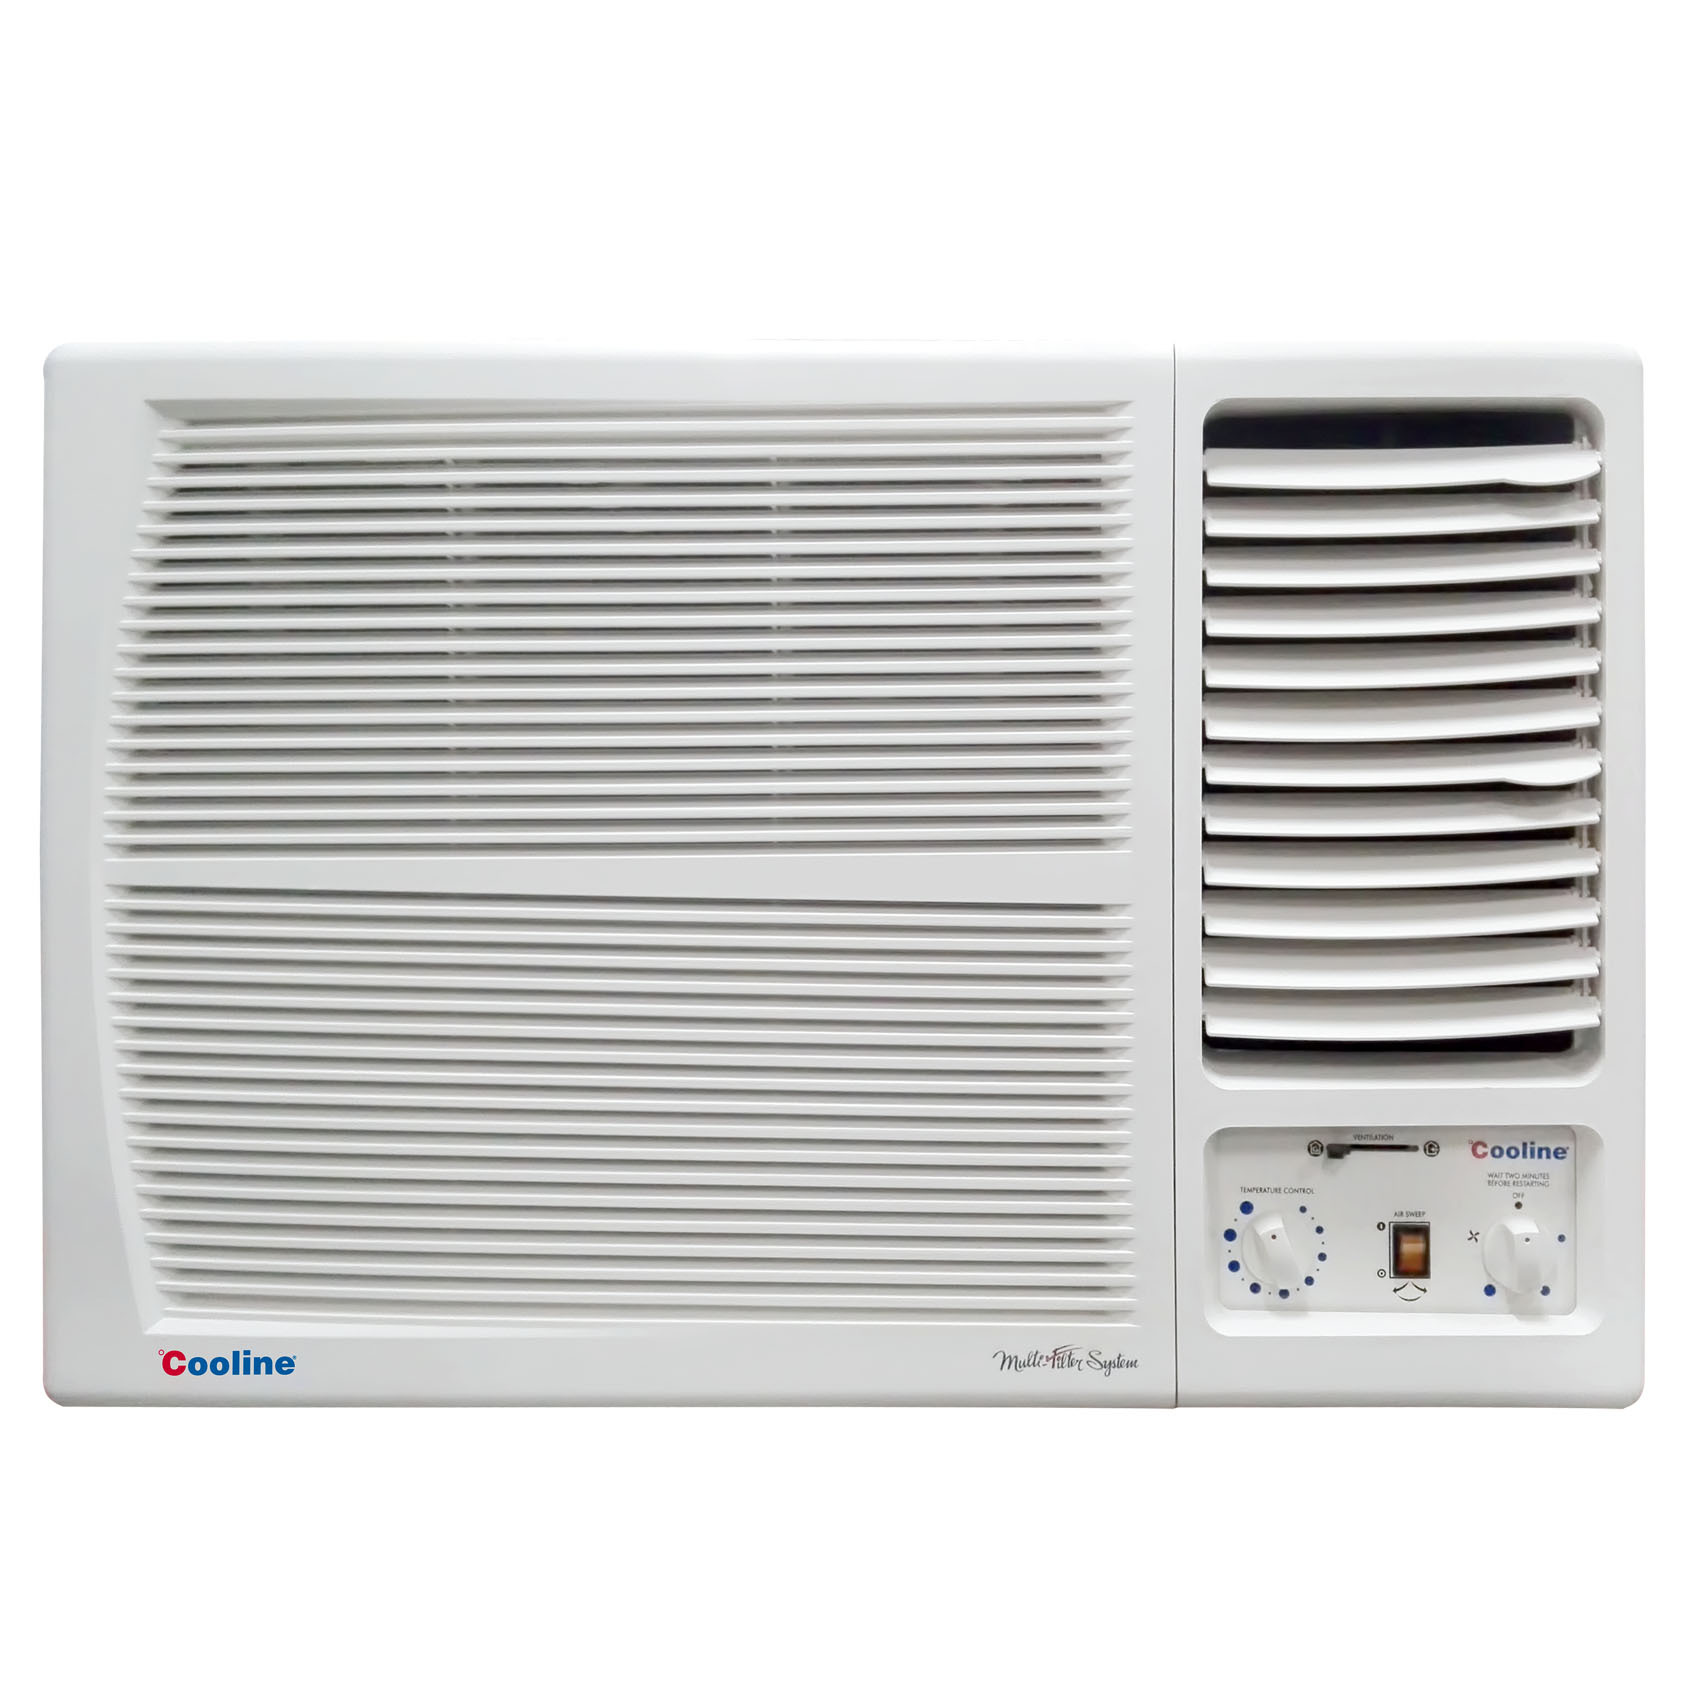 COOLINE WINDOW A/C 2.0T LCB24